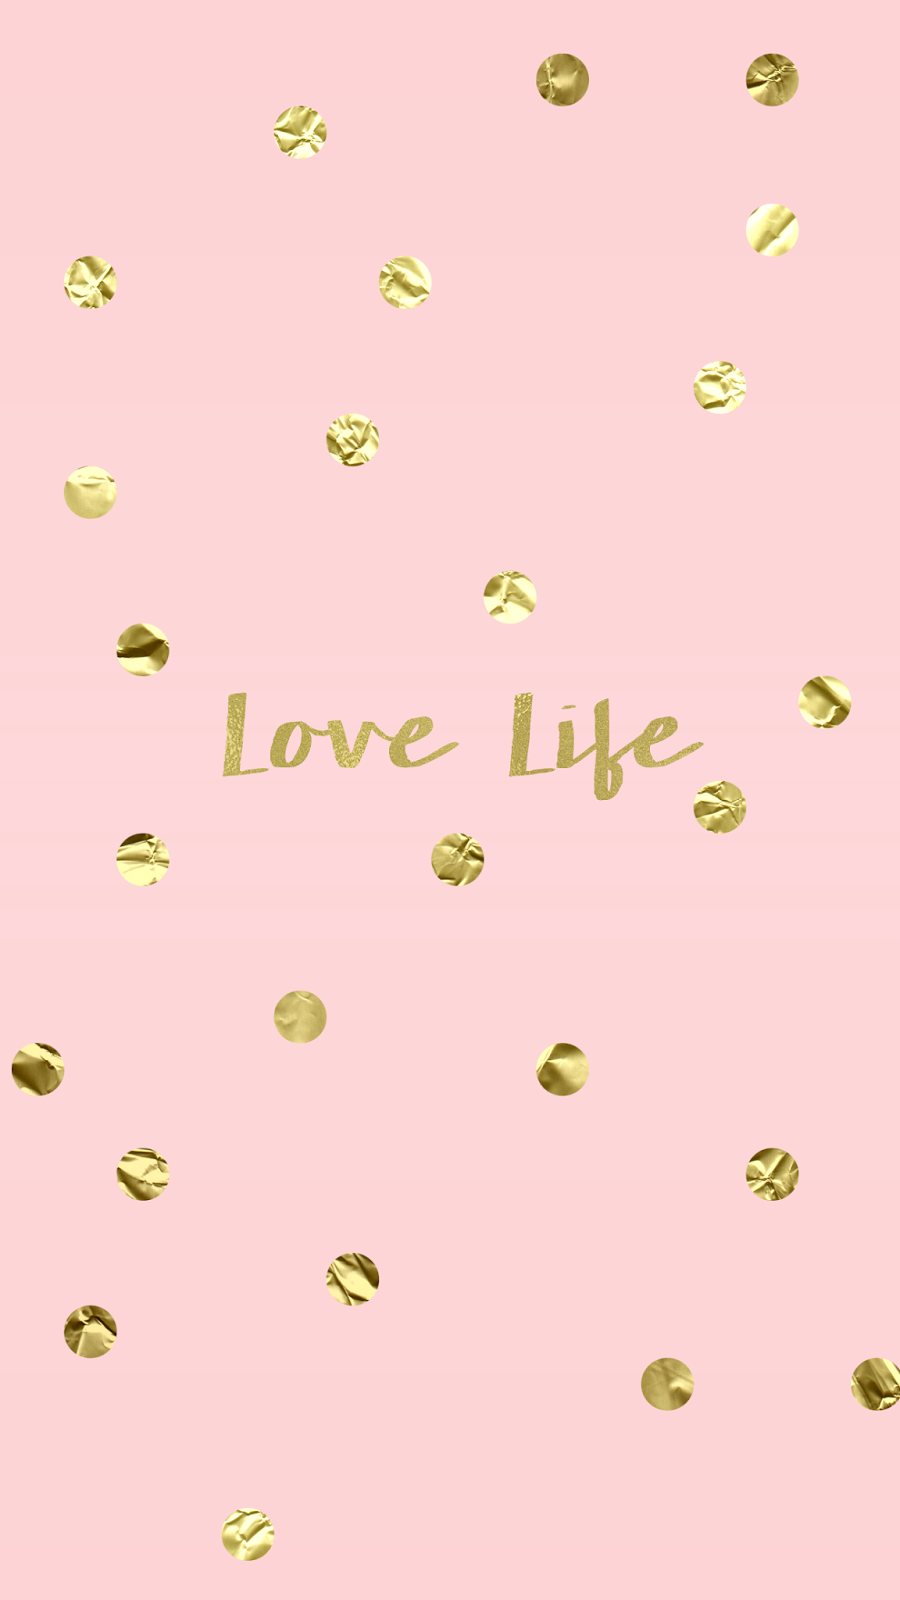 Wallpaper Background Hd Iphone Gold Confetti Pink Love Life Pink And Gold Wallpaper Kate Spade Wallpaper Iphone Wallpaper Kate Spade